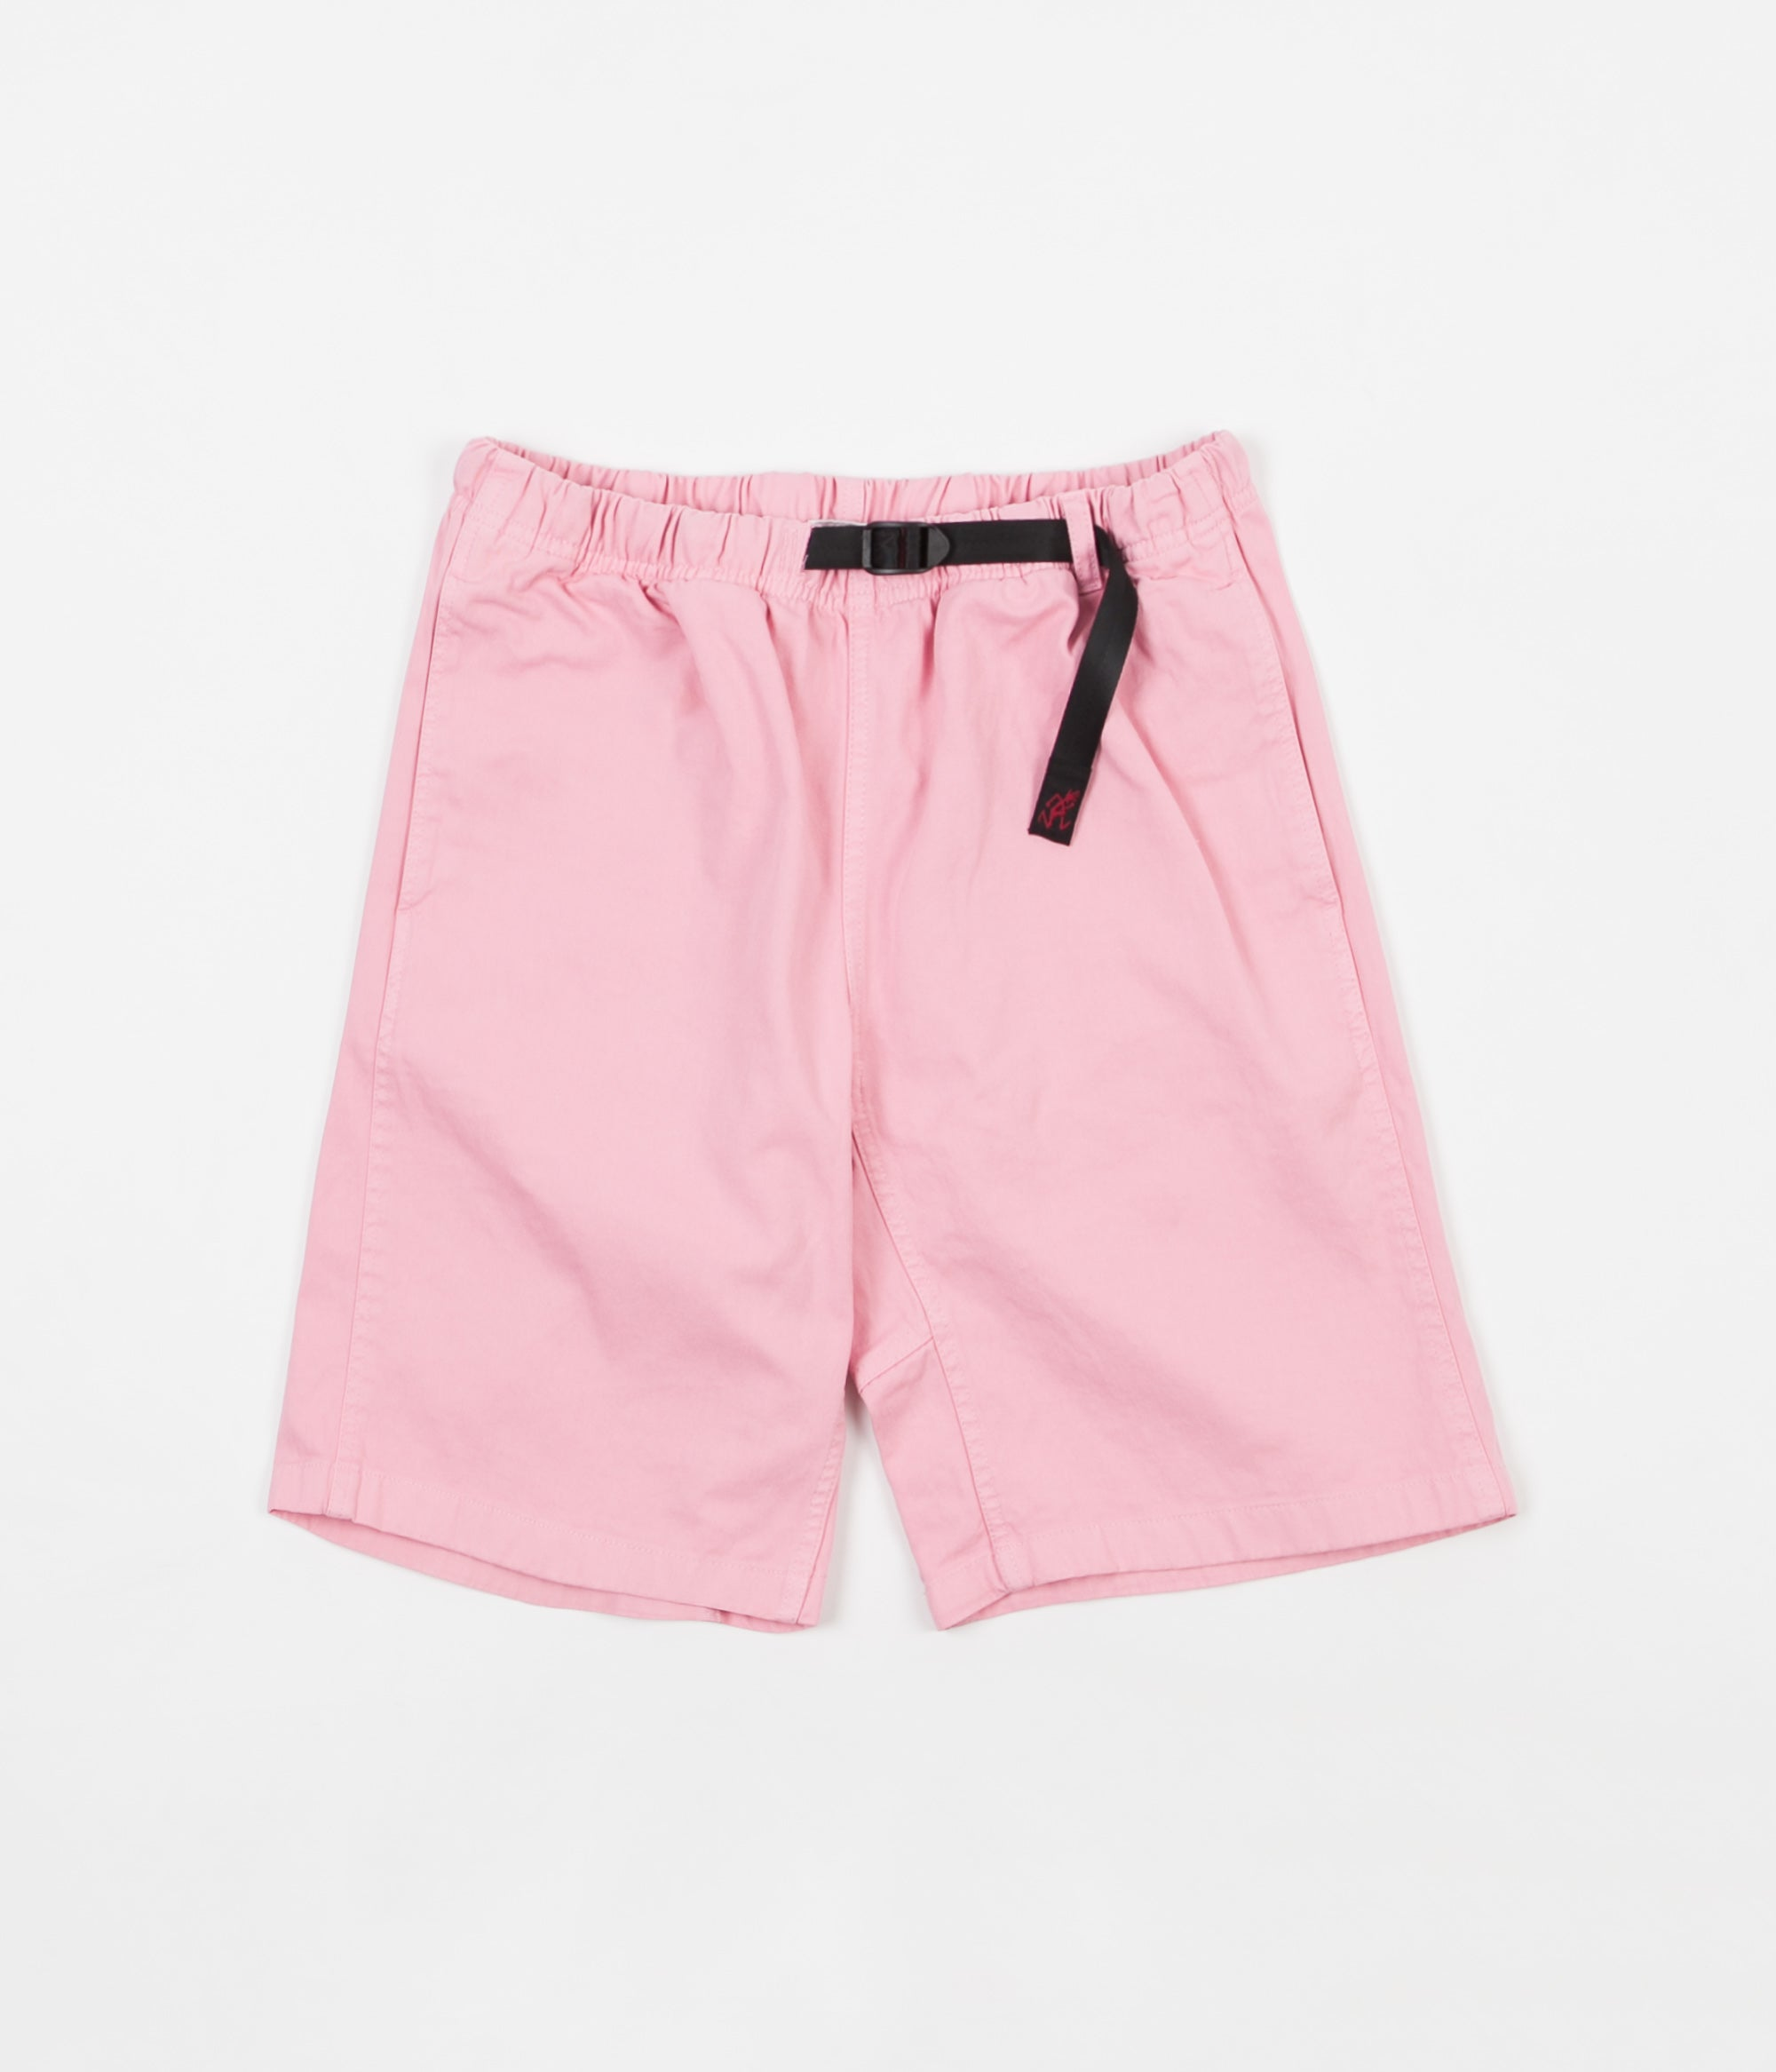 Gramicci Japan G Shorts - Rose